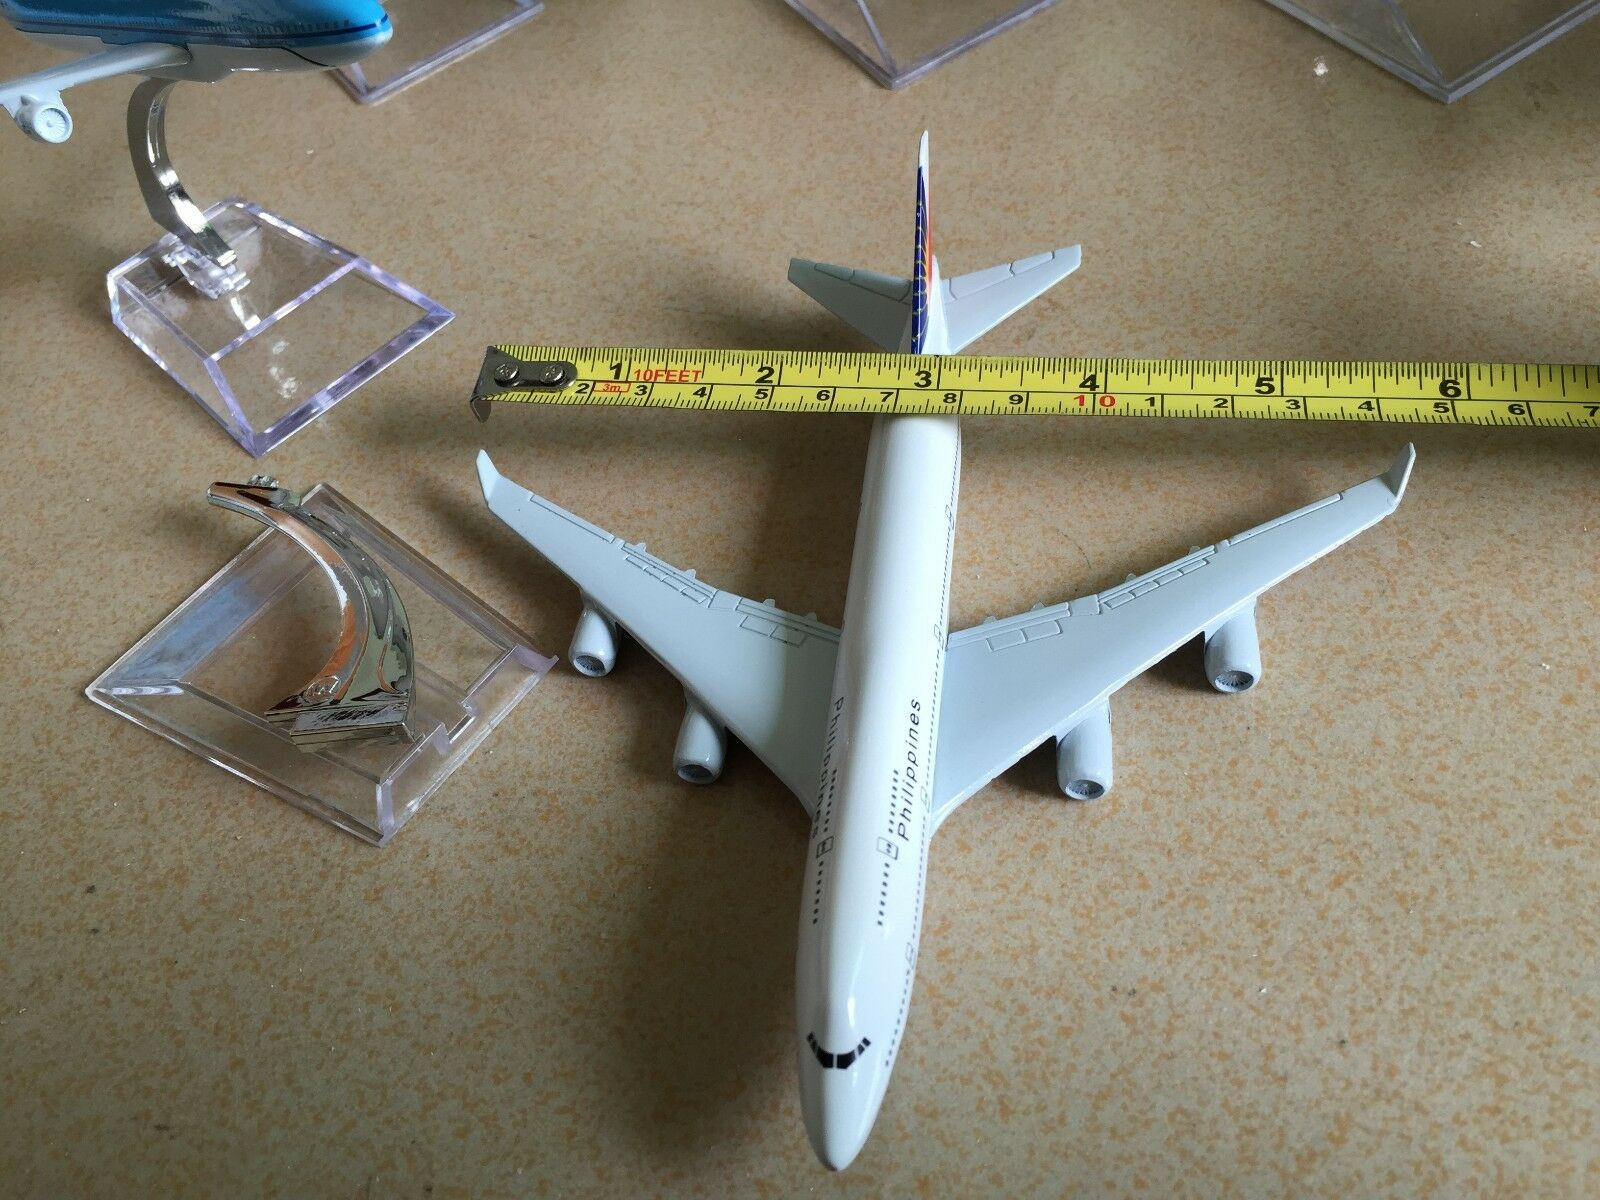 10PCS BOEING 747 Passenger Airplane Airplane Airplane Plane Metal Diecast Model Collection C2 c0952e